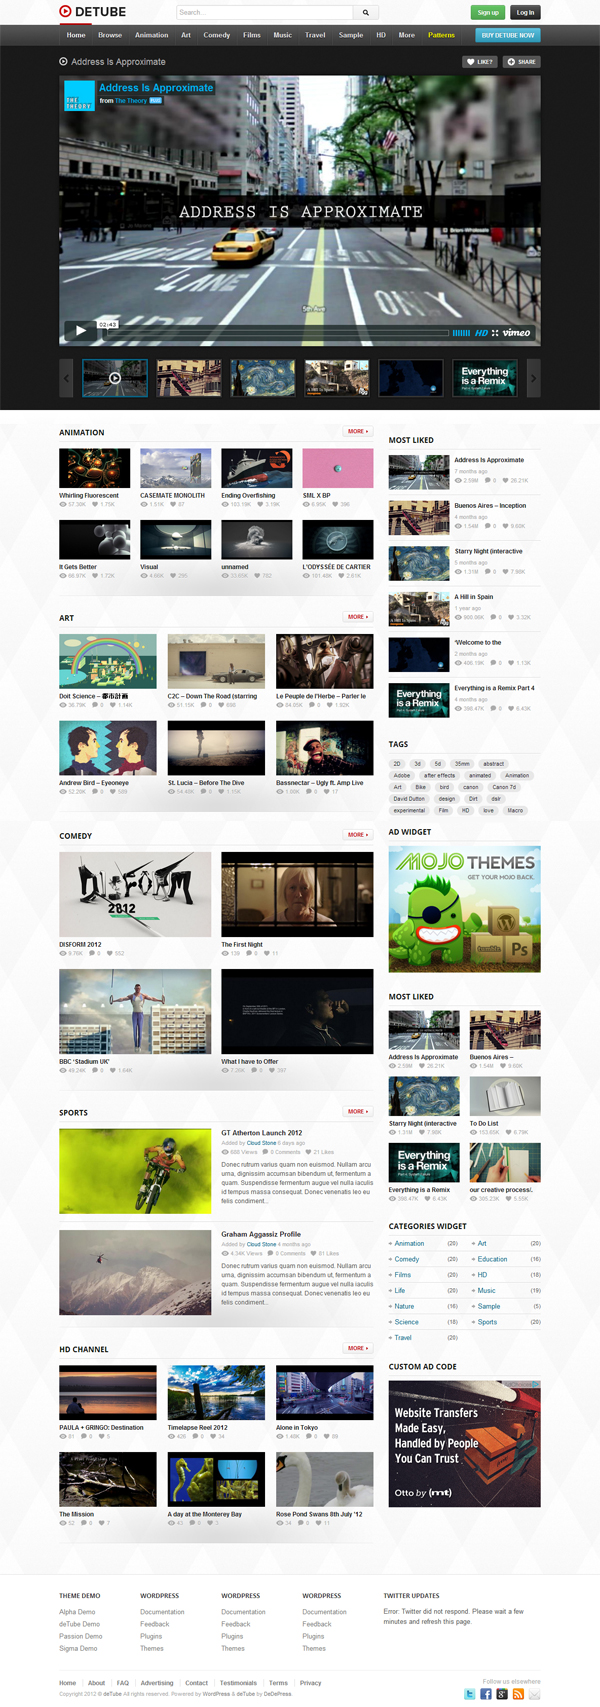 Detube template wordpress